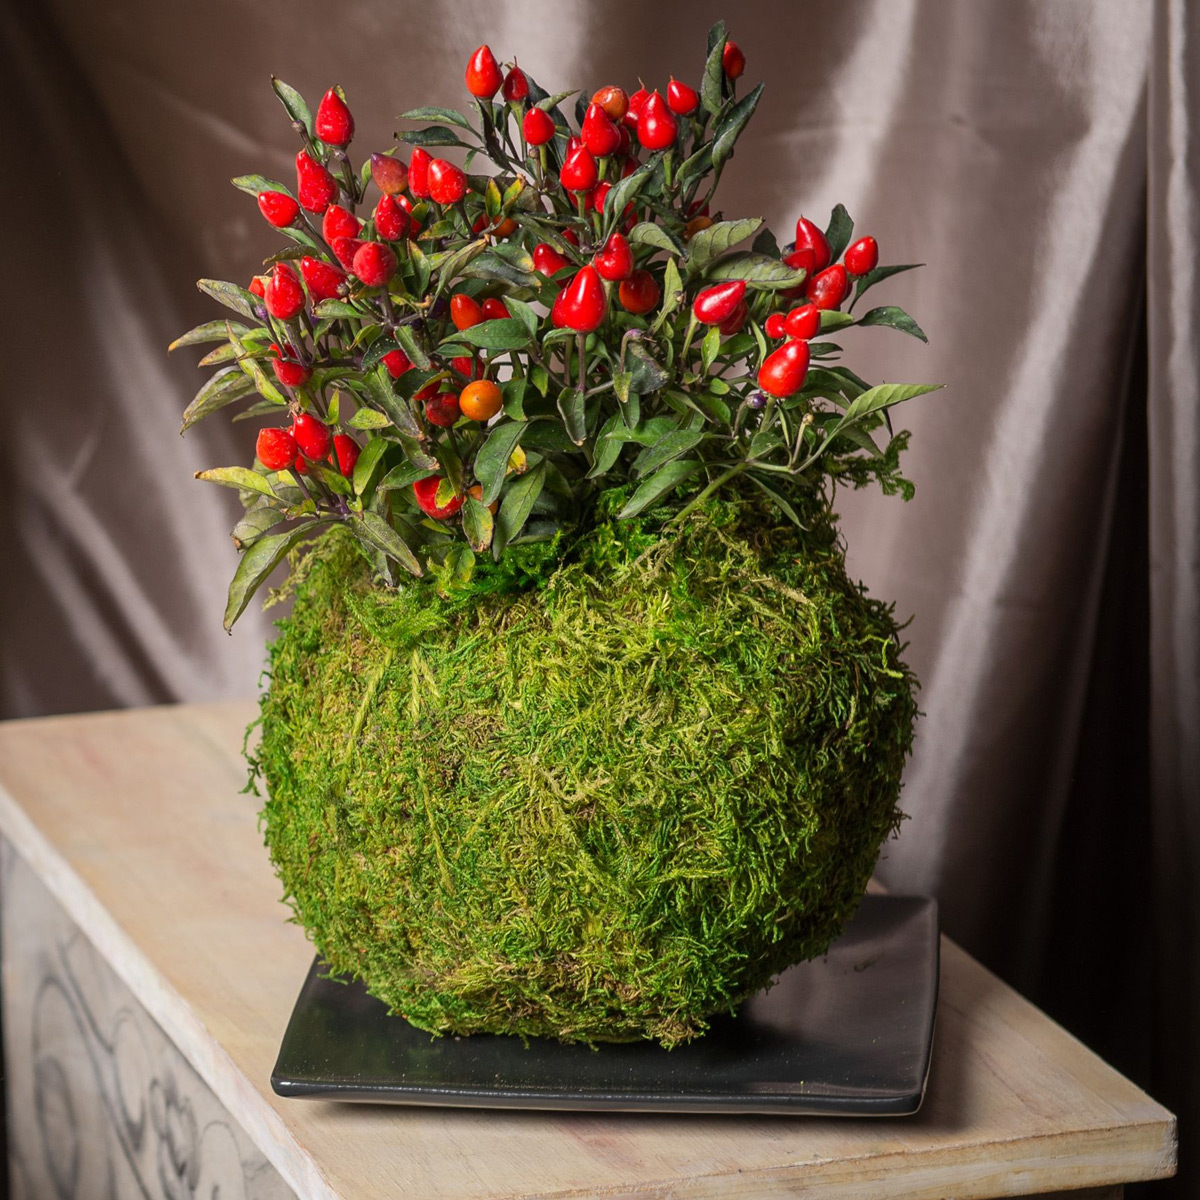 Japanese Kokedama Gardening Kit Create Unique Living Art